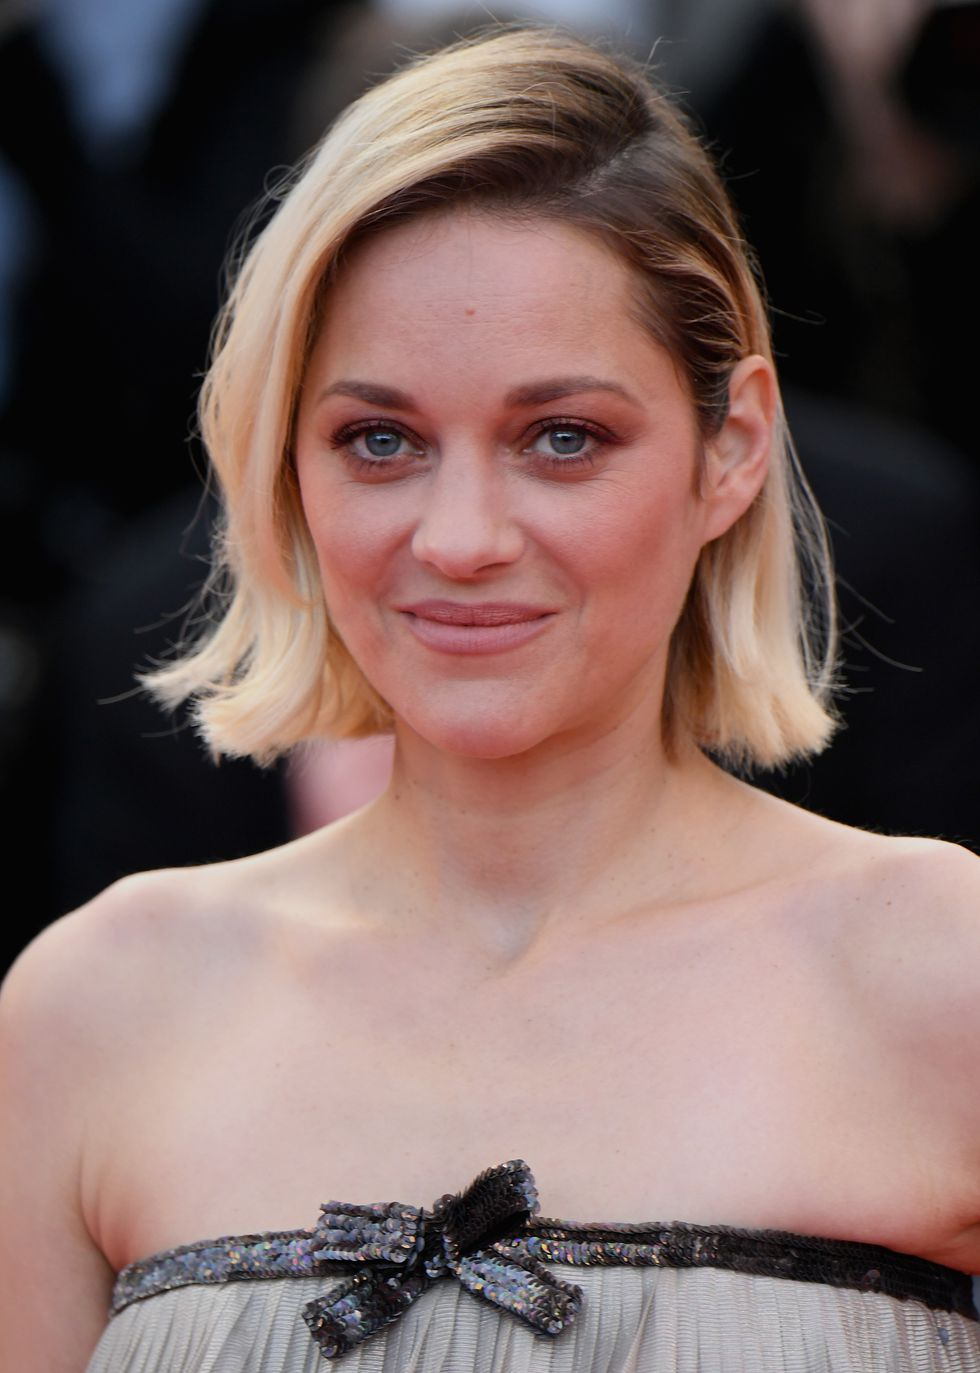 BLONDE: Softly Contrasting Hair   Marion Cotillard's surprise from brunette to blonde is sure to inspire others. What makes her switch different from other blonde makeovers? Soft brown roots and her still-dark brows. The intentional contrast is both pretty and convenient, as it will allow her hair to grow out with less maintenance.